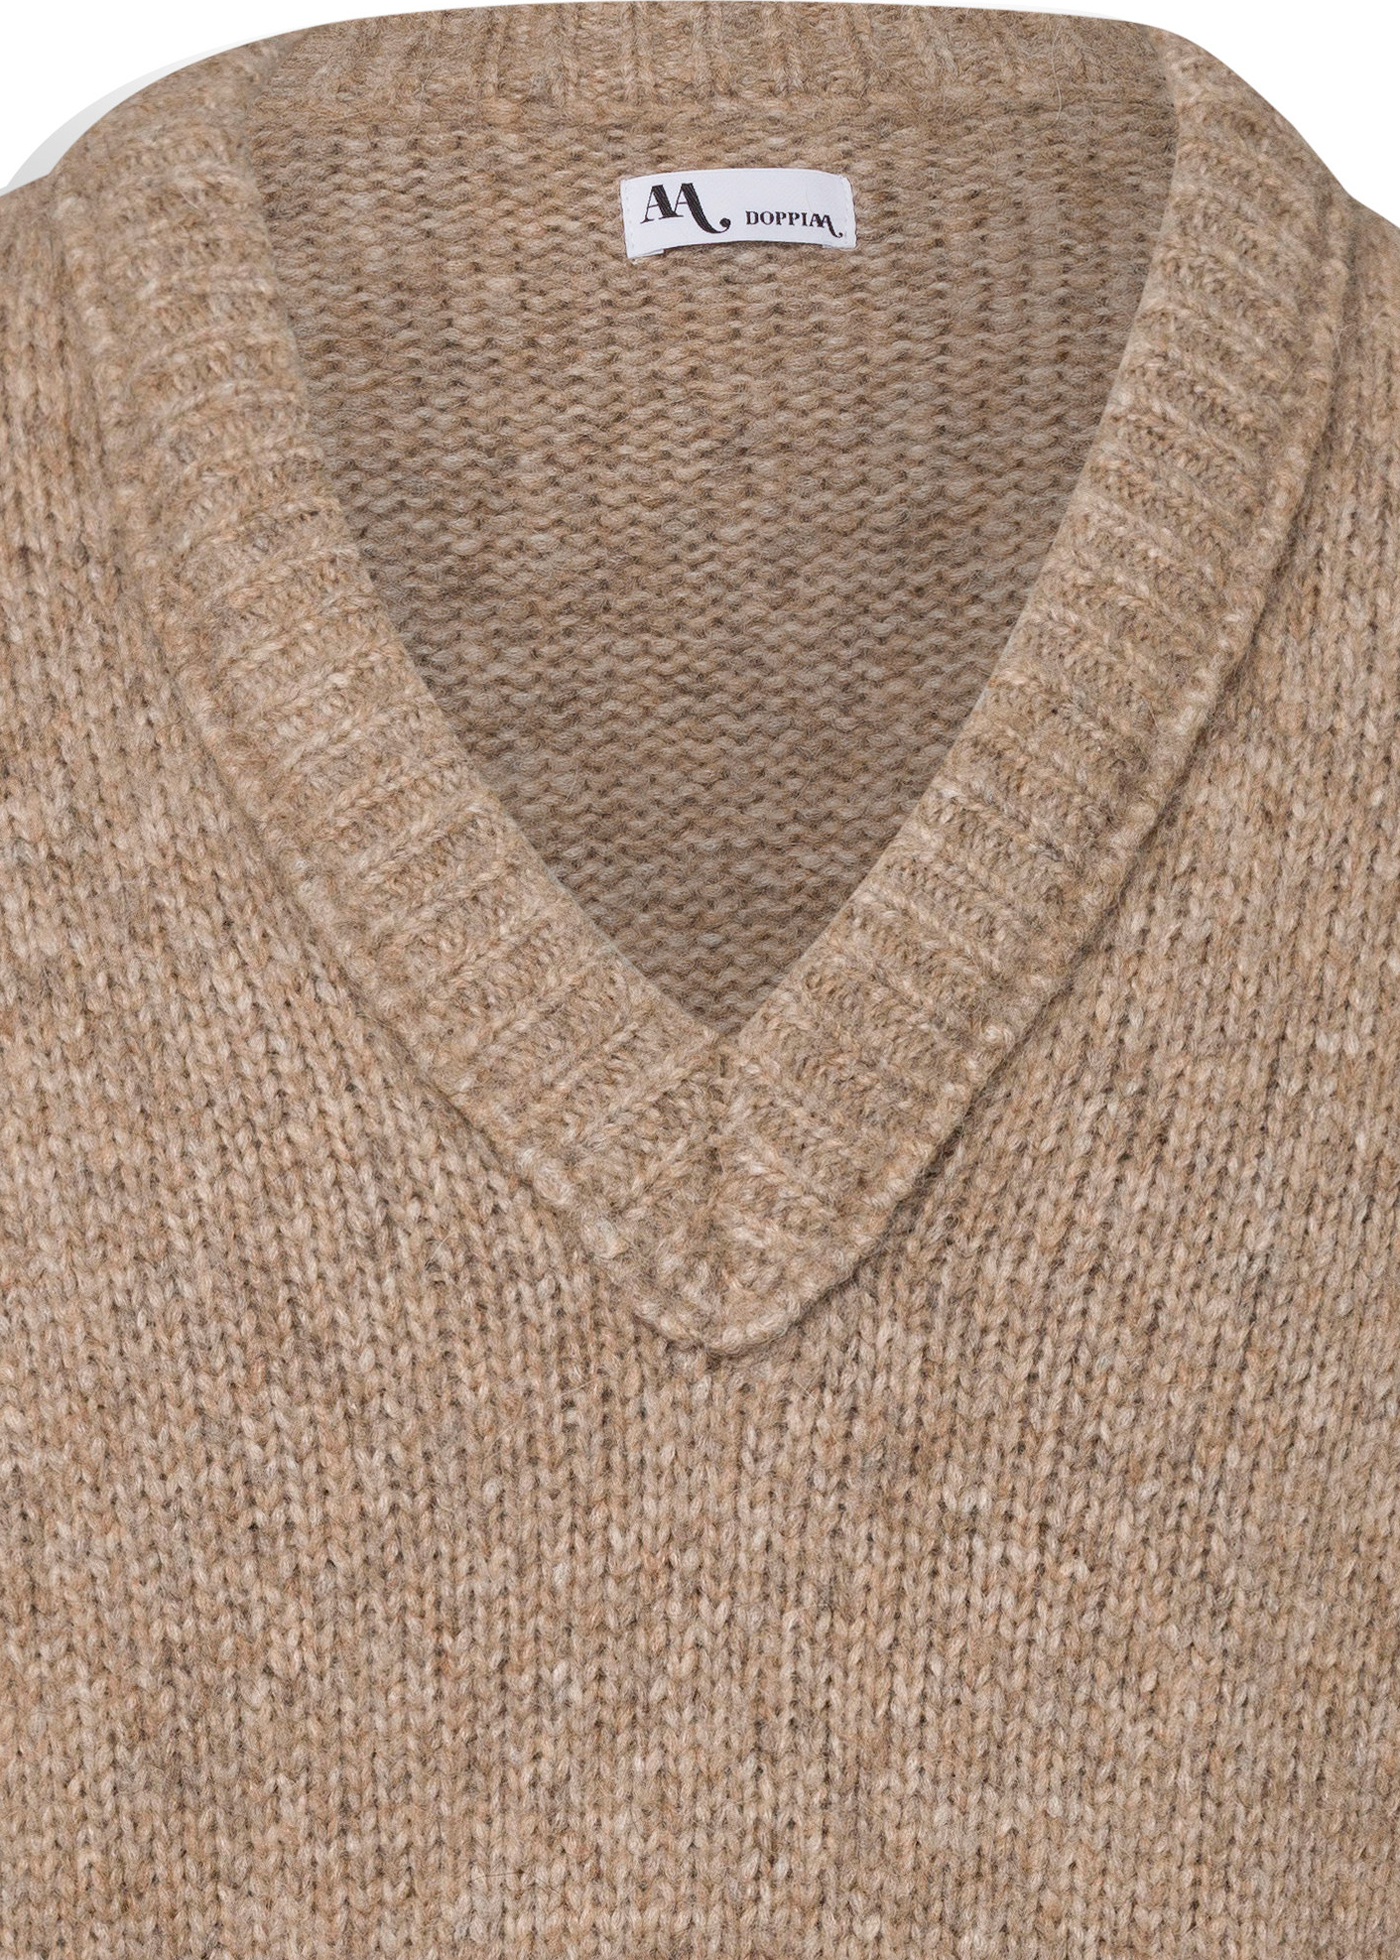 ROUND-NECKED SWEATER image number 2